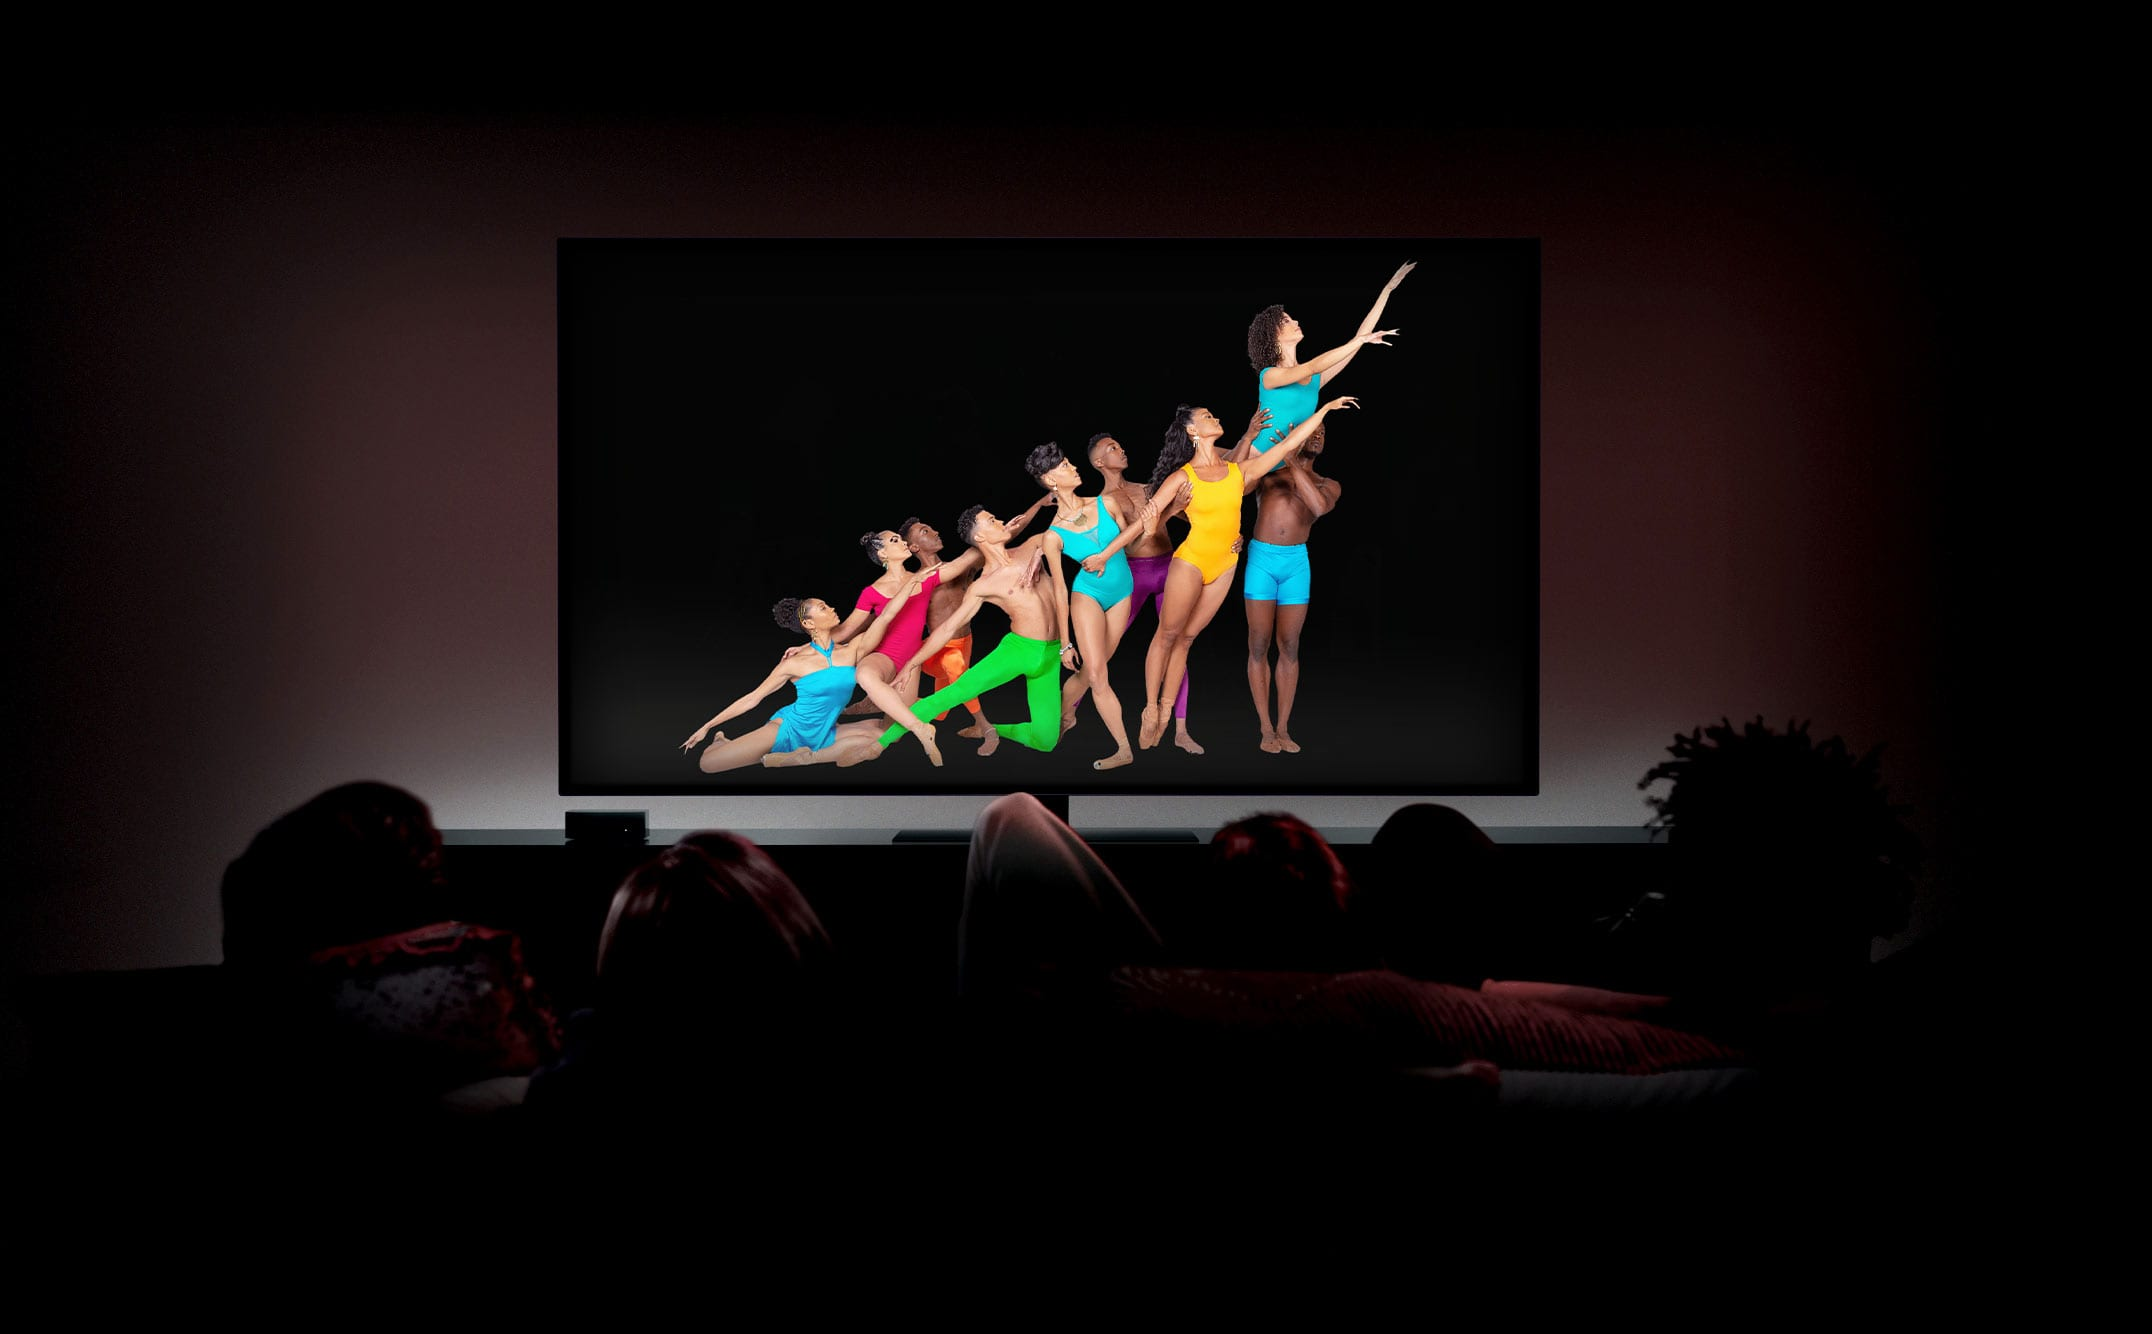 Watch Collage Dance on TV